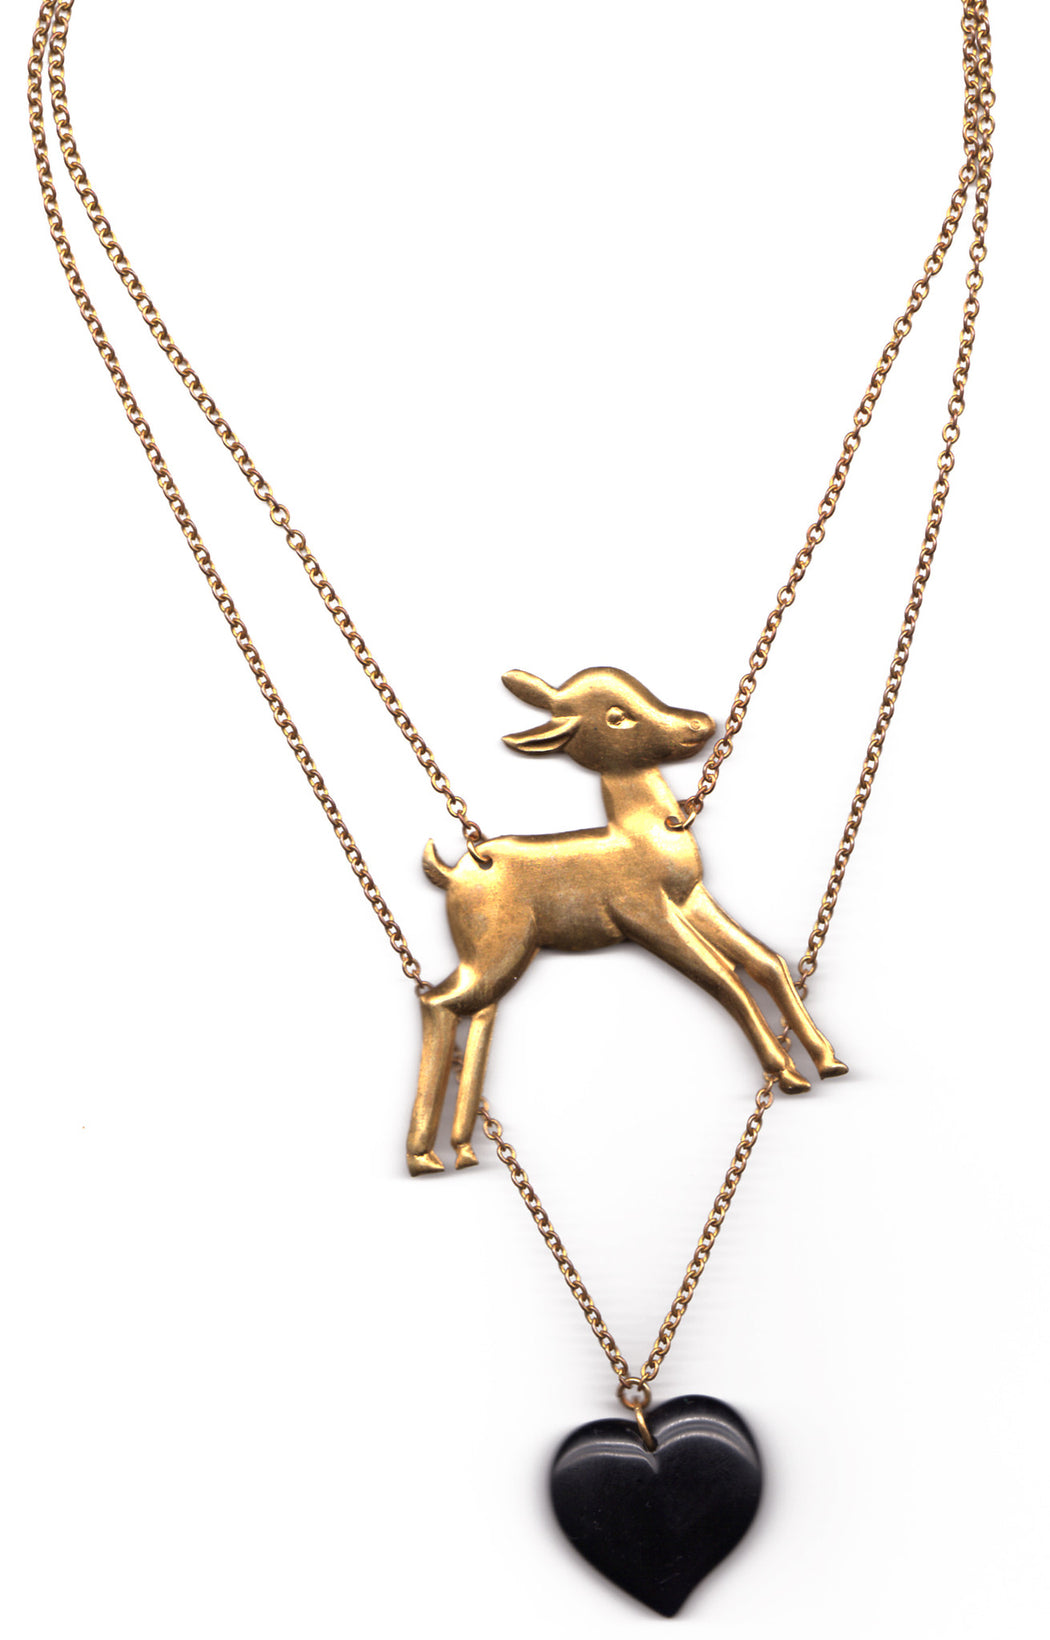 Bambi Vision necklace - Family Affairs